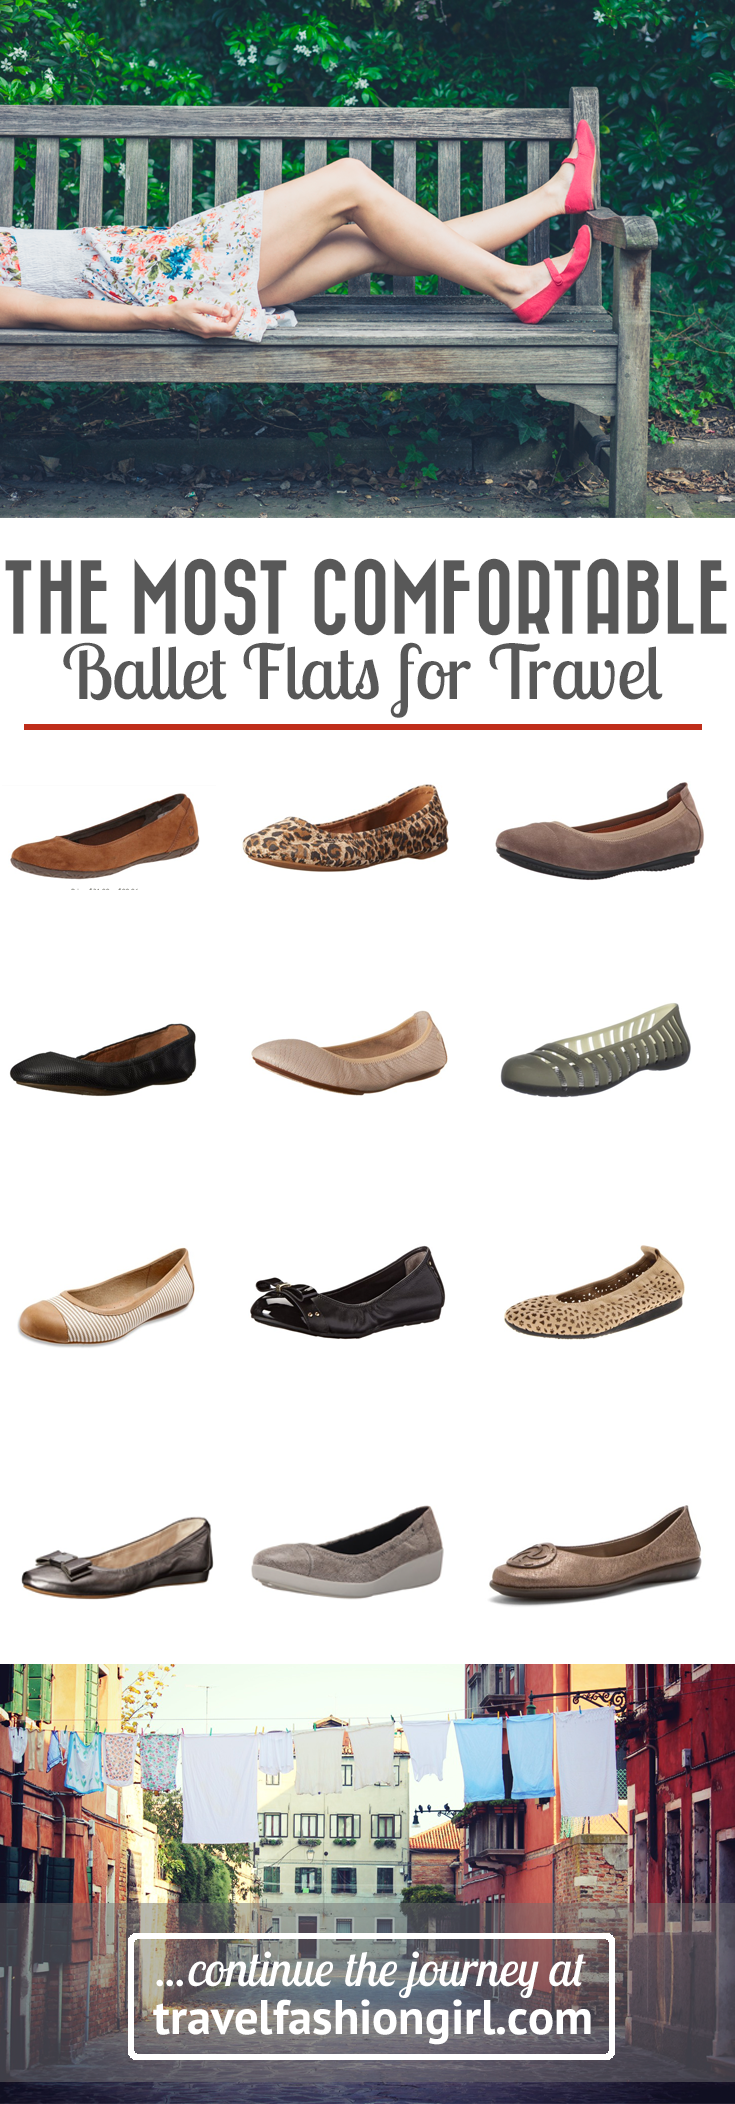 69fc812aa53b Looking for the most comfortable ballet flats for travel  These are our top  picks for the most comfortable styles to wear at home and while traveling.